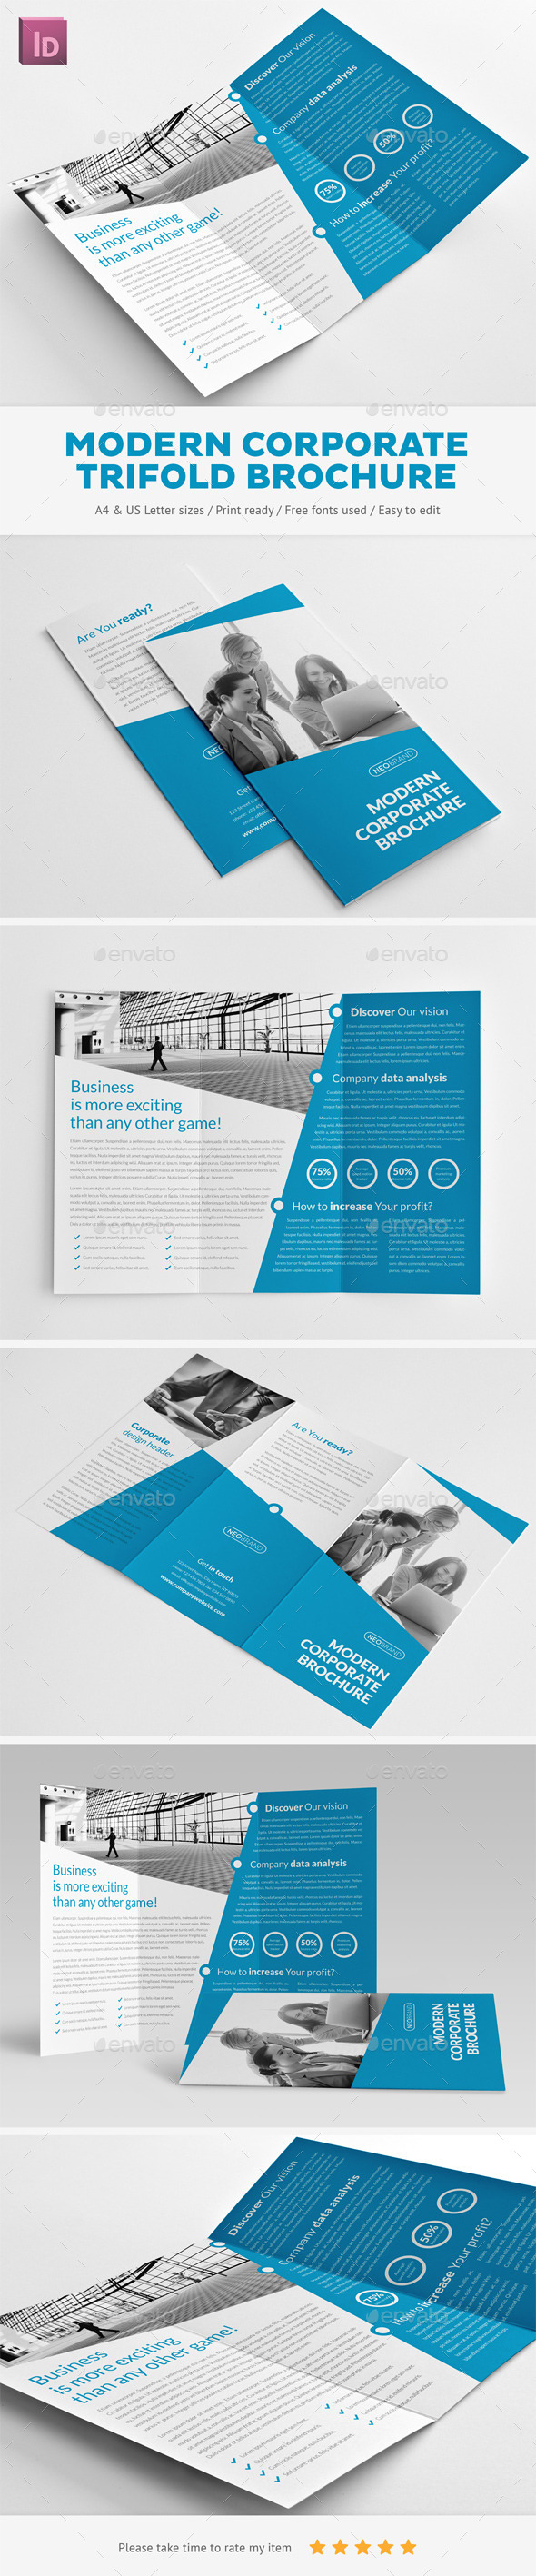 GraphicRiver Modern Corporate Trifold Brochure 11017674